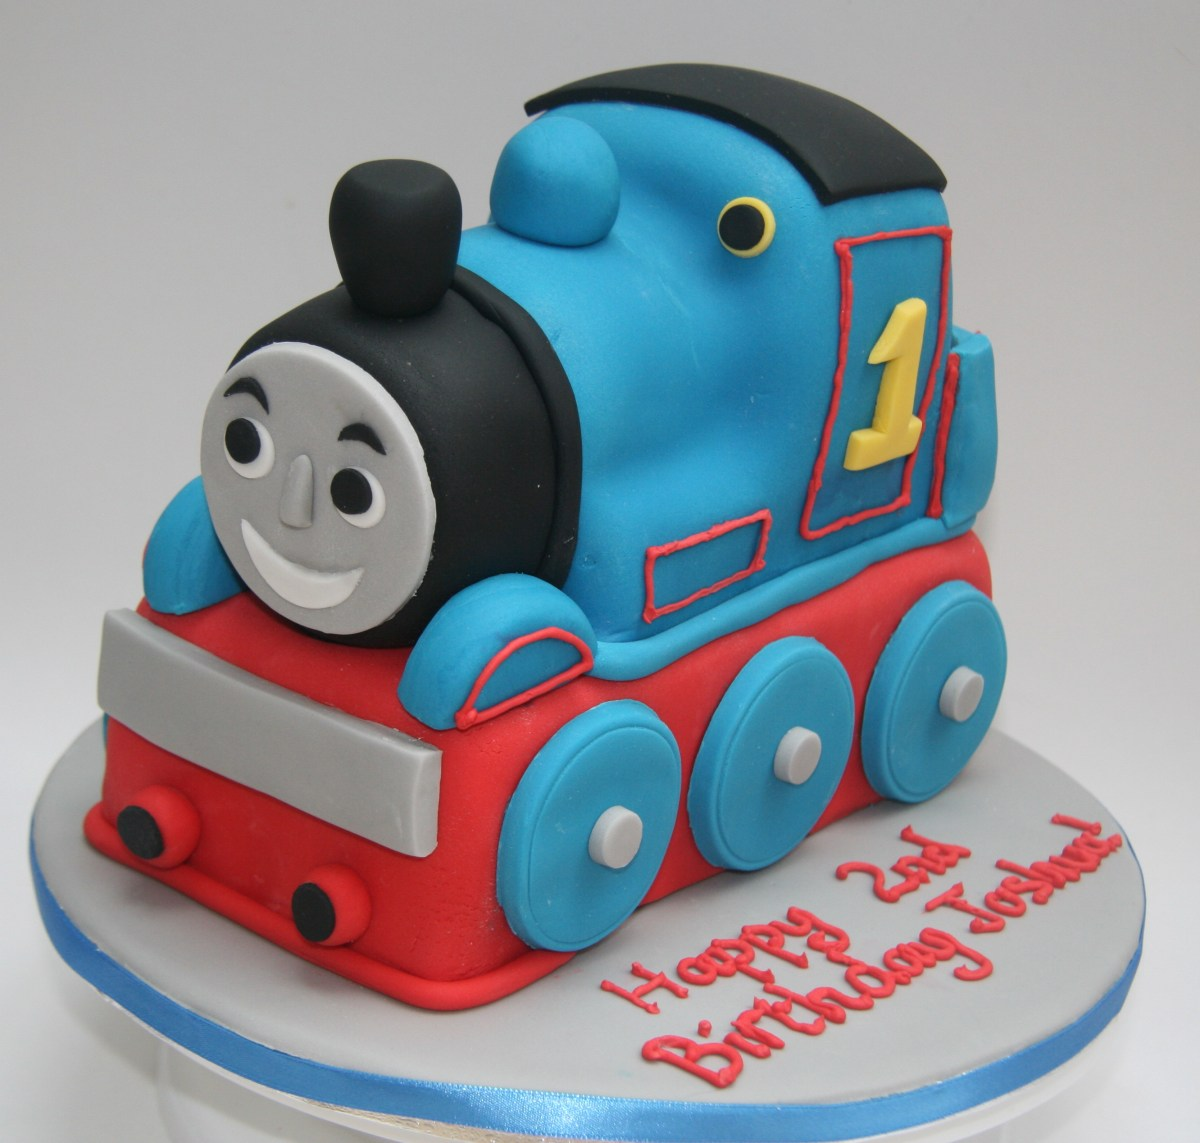 Miraculous Thomas The Train Birthday Cakes 8 Thomas The Train Birthday Cakes Personalised Birthday Cards Veneteletsinfo